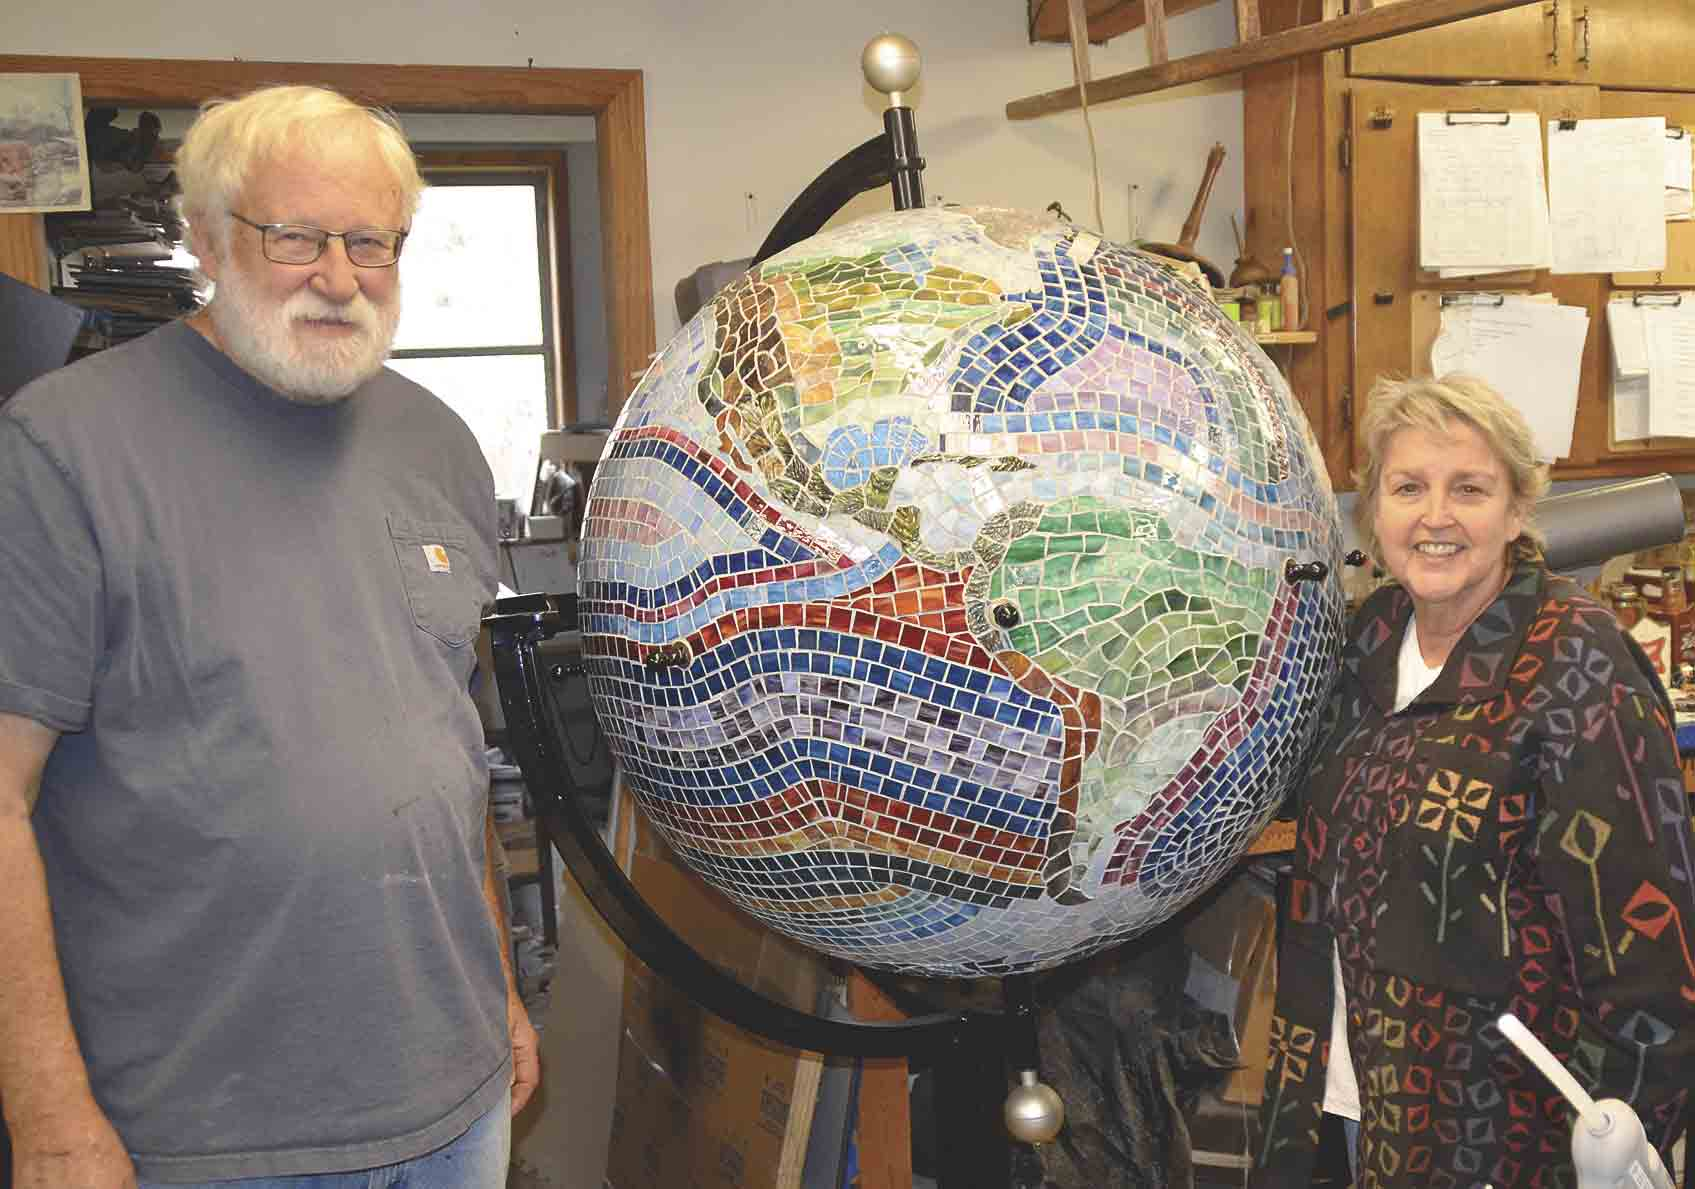 """Steve and Peggy Kittelson have spent untold hours crafting the """"Hometown To The World"""" art piece for the City of Postville. (Jack Swanson photo)Local artisans create window to the worldBy Jack Swansonjswanson@fayettecountynewspapers.comHow..."""